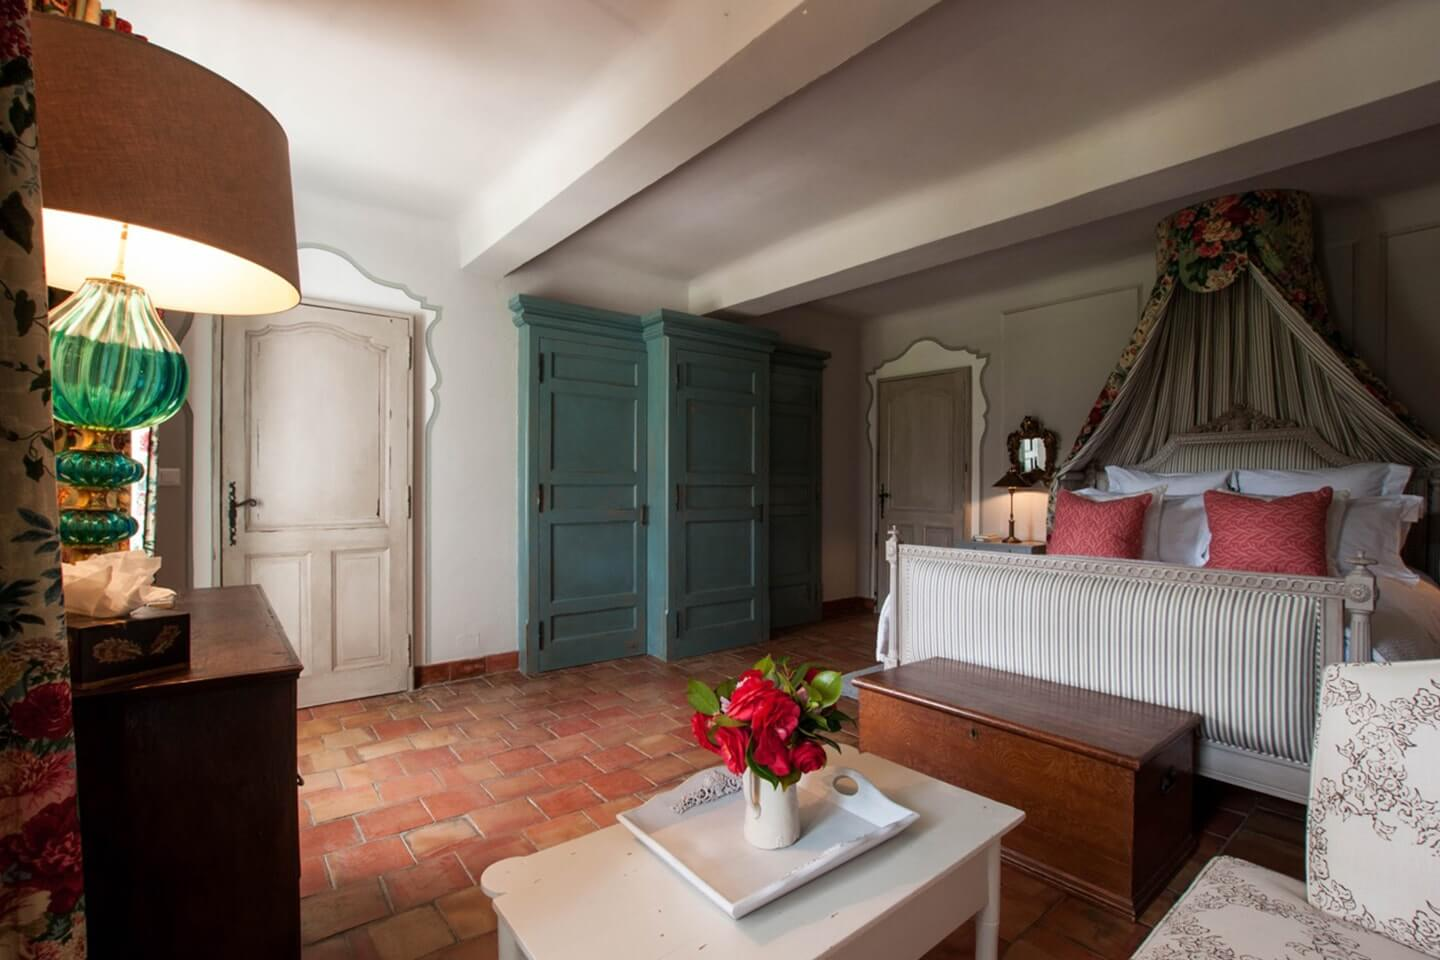 luxury hotel of Le Preverger Room and Accommodation